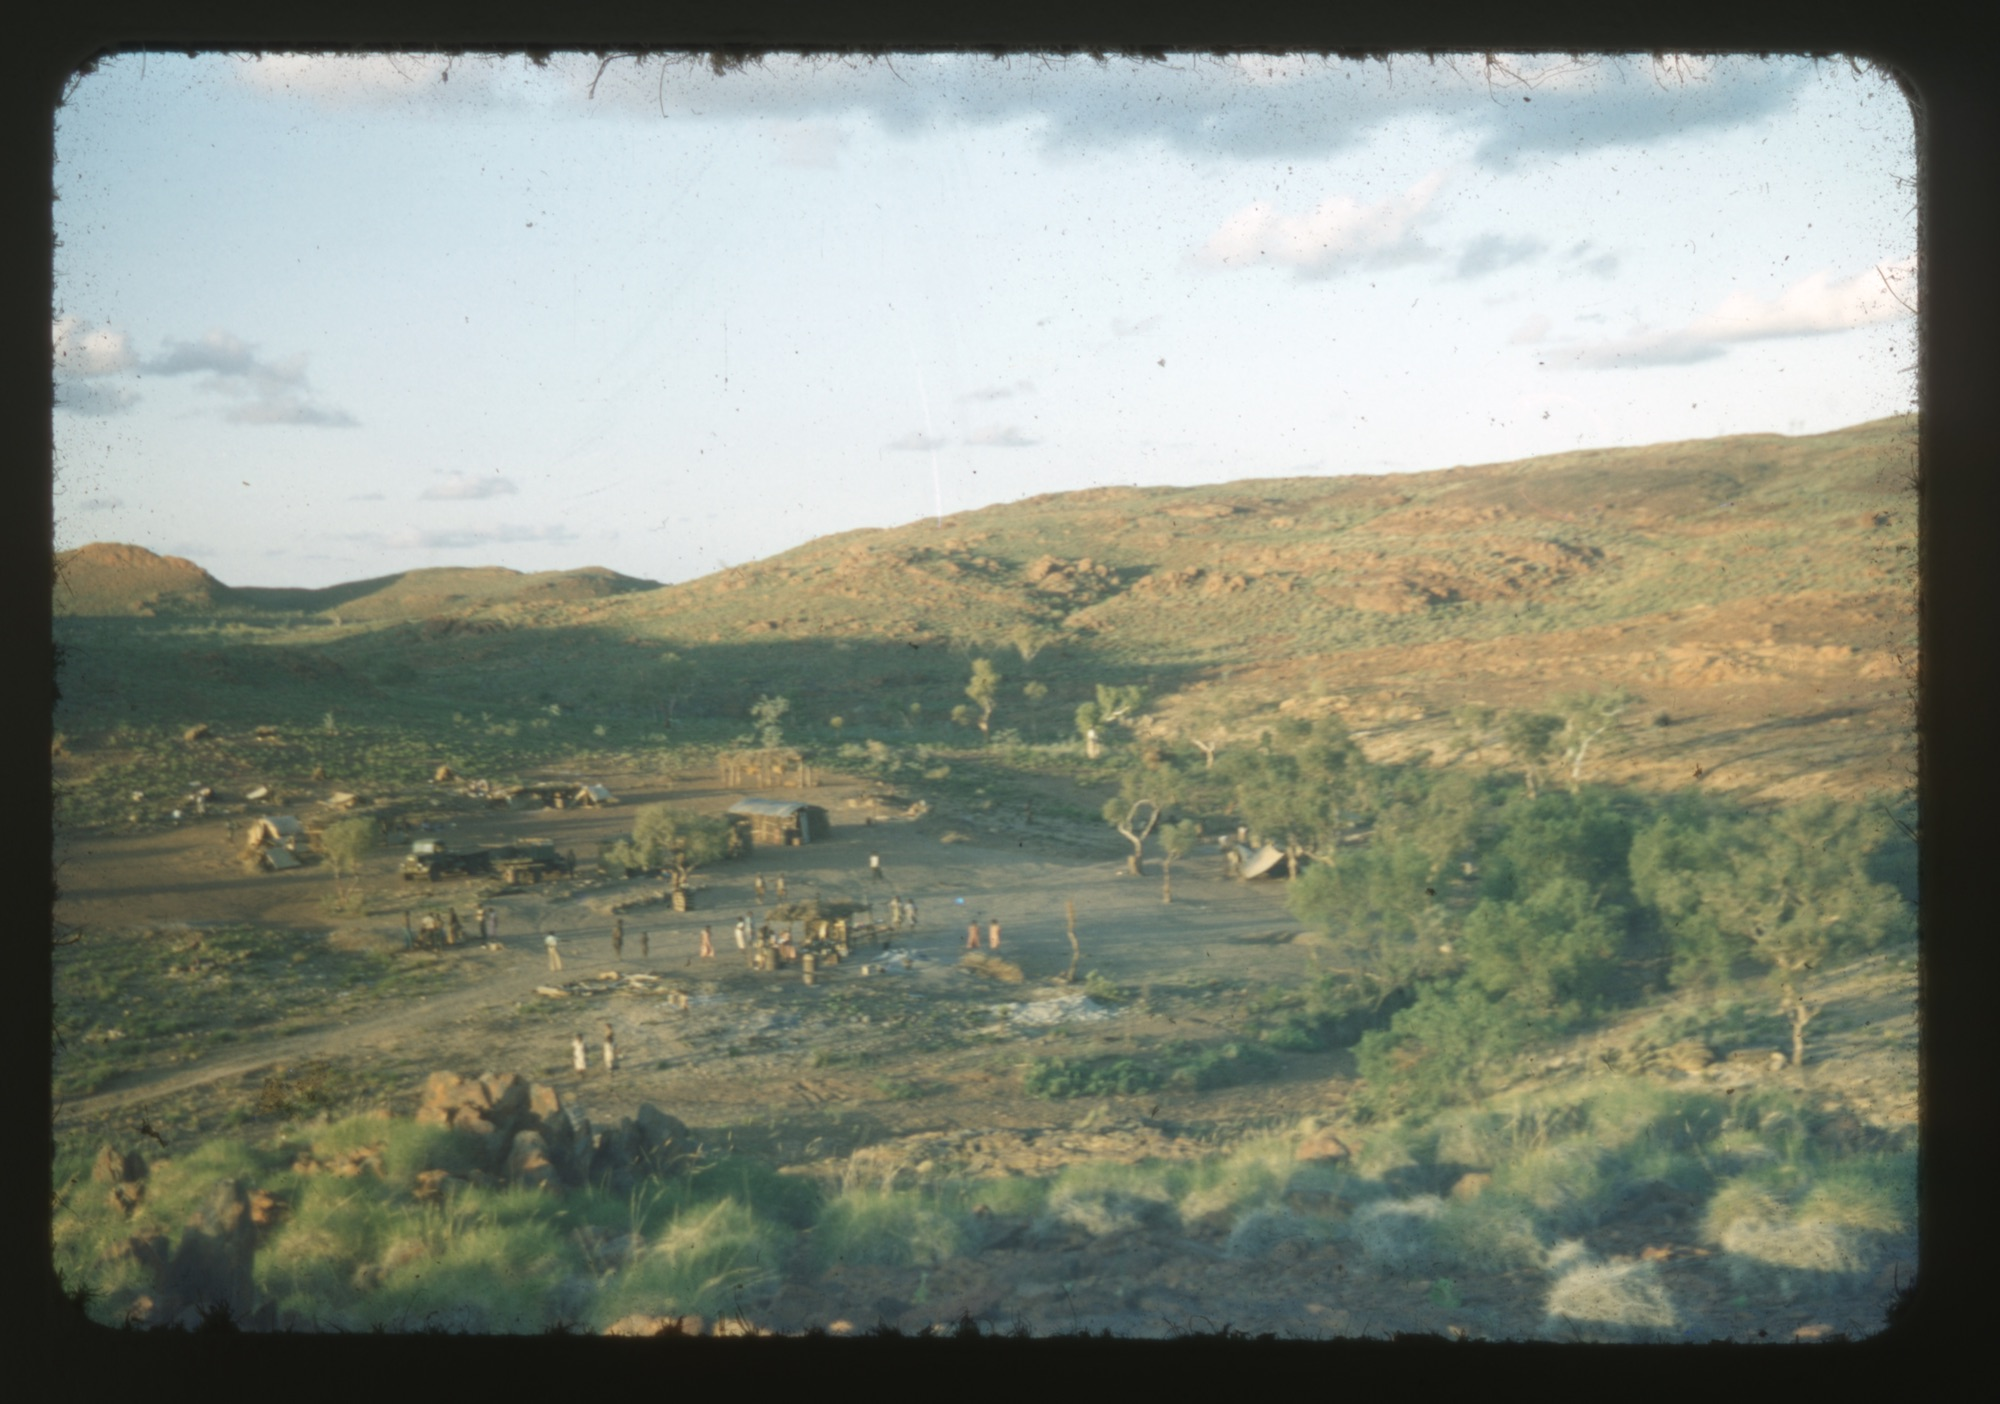 Native Mining Camp at Pilgangoora 1953